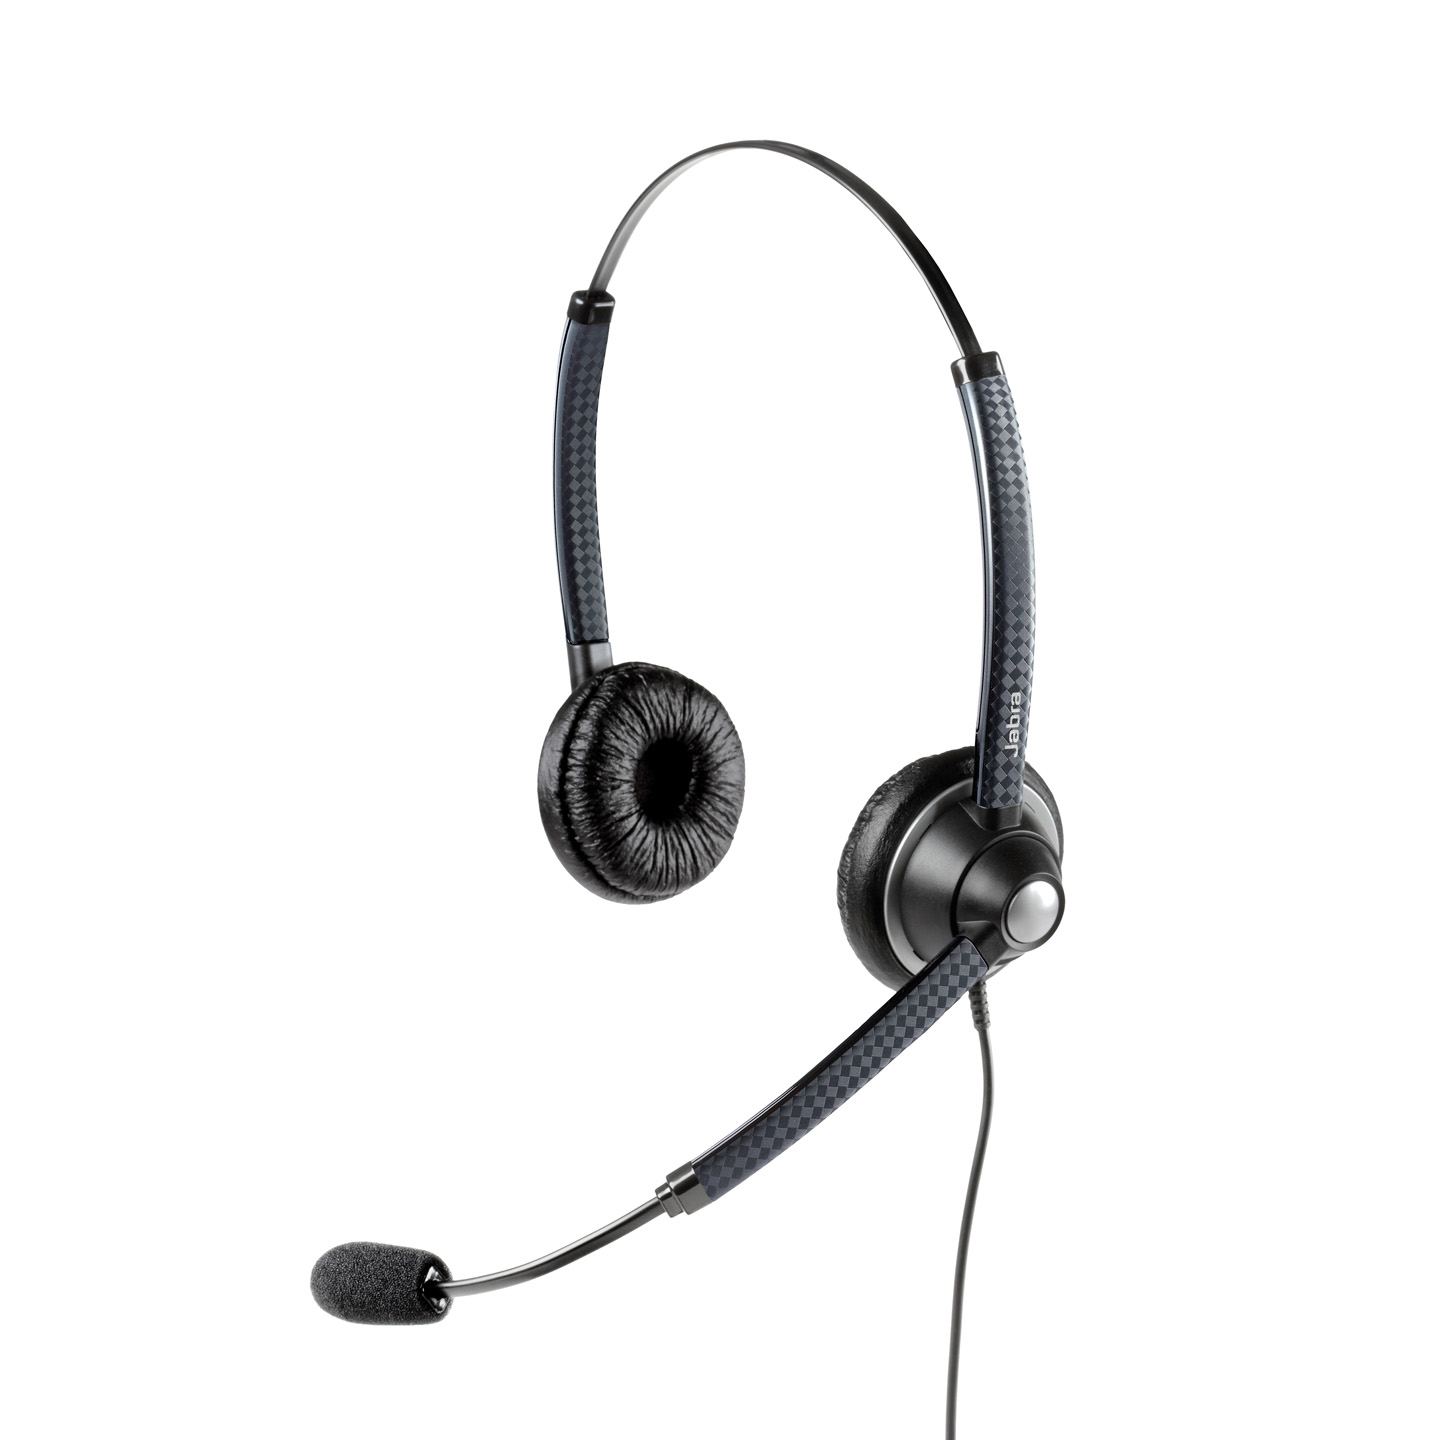 Wired Headset, Jabra BIZ 1900 Duo